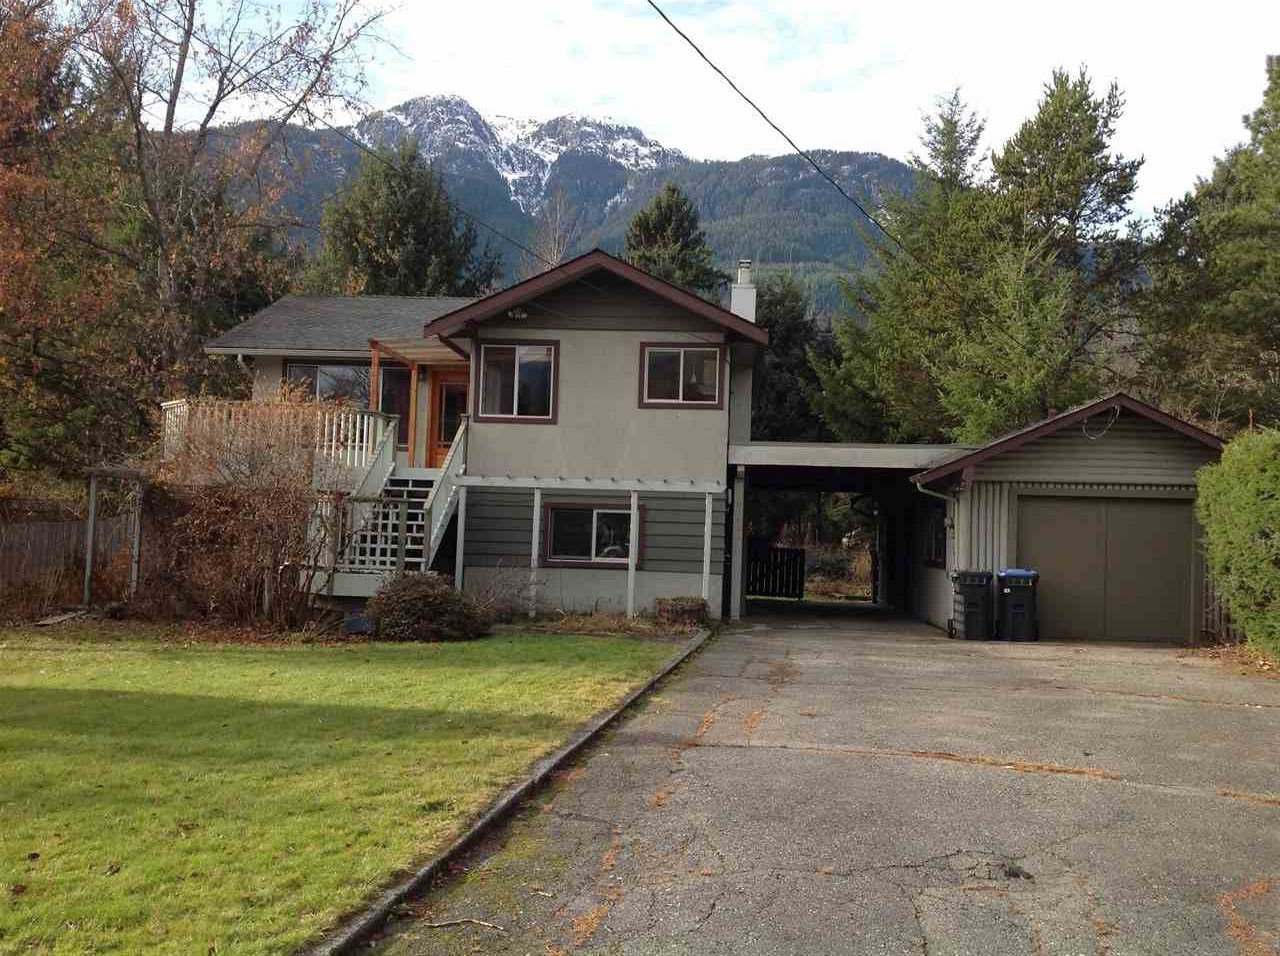 Main Photo: 41651 COTTONWOOD Road in Squamish: Brackendale House for sale : MLS®# R2329962